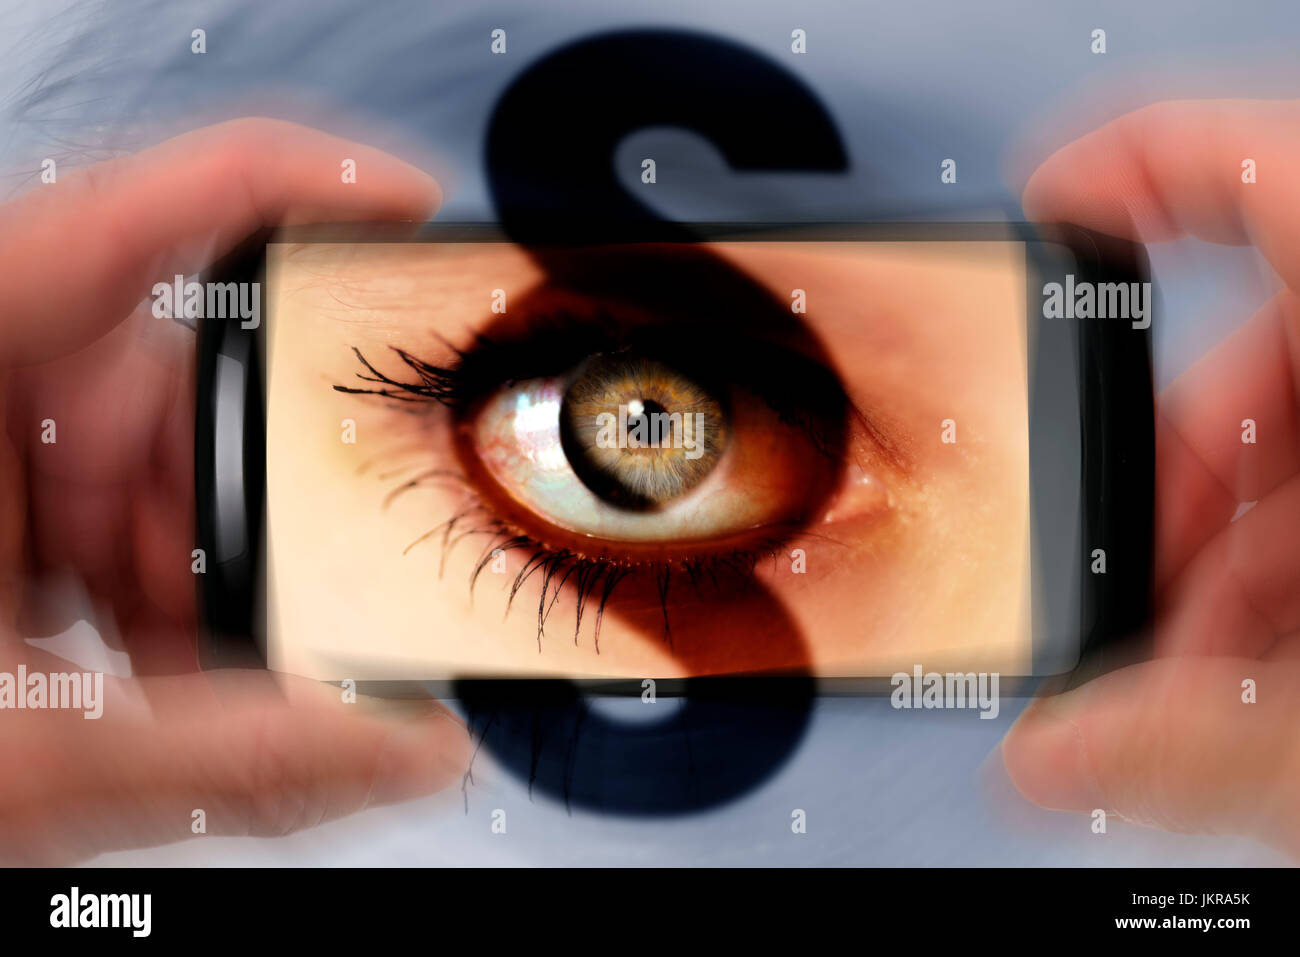 Eye in smartphone camera with section, symbolic photo punishments for nosy parkers, Auge in Smartphone-Kamera mit Stock Photo